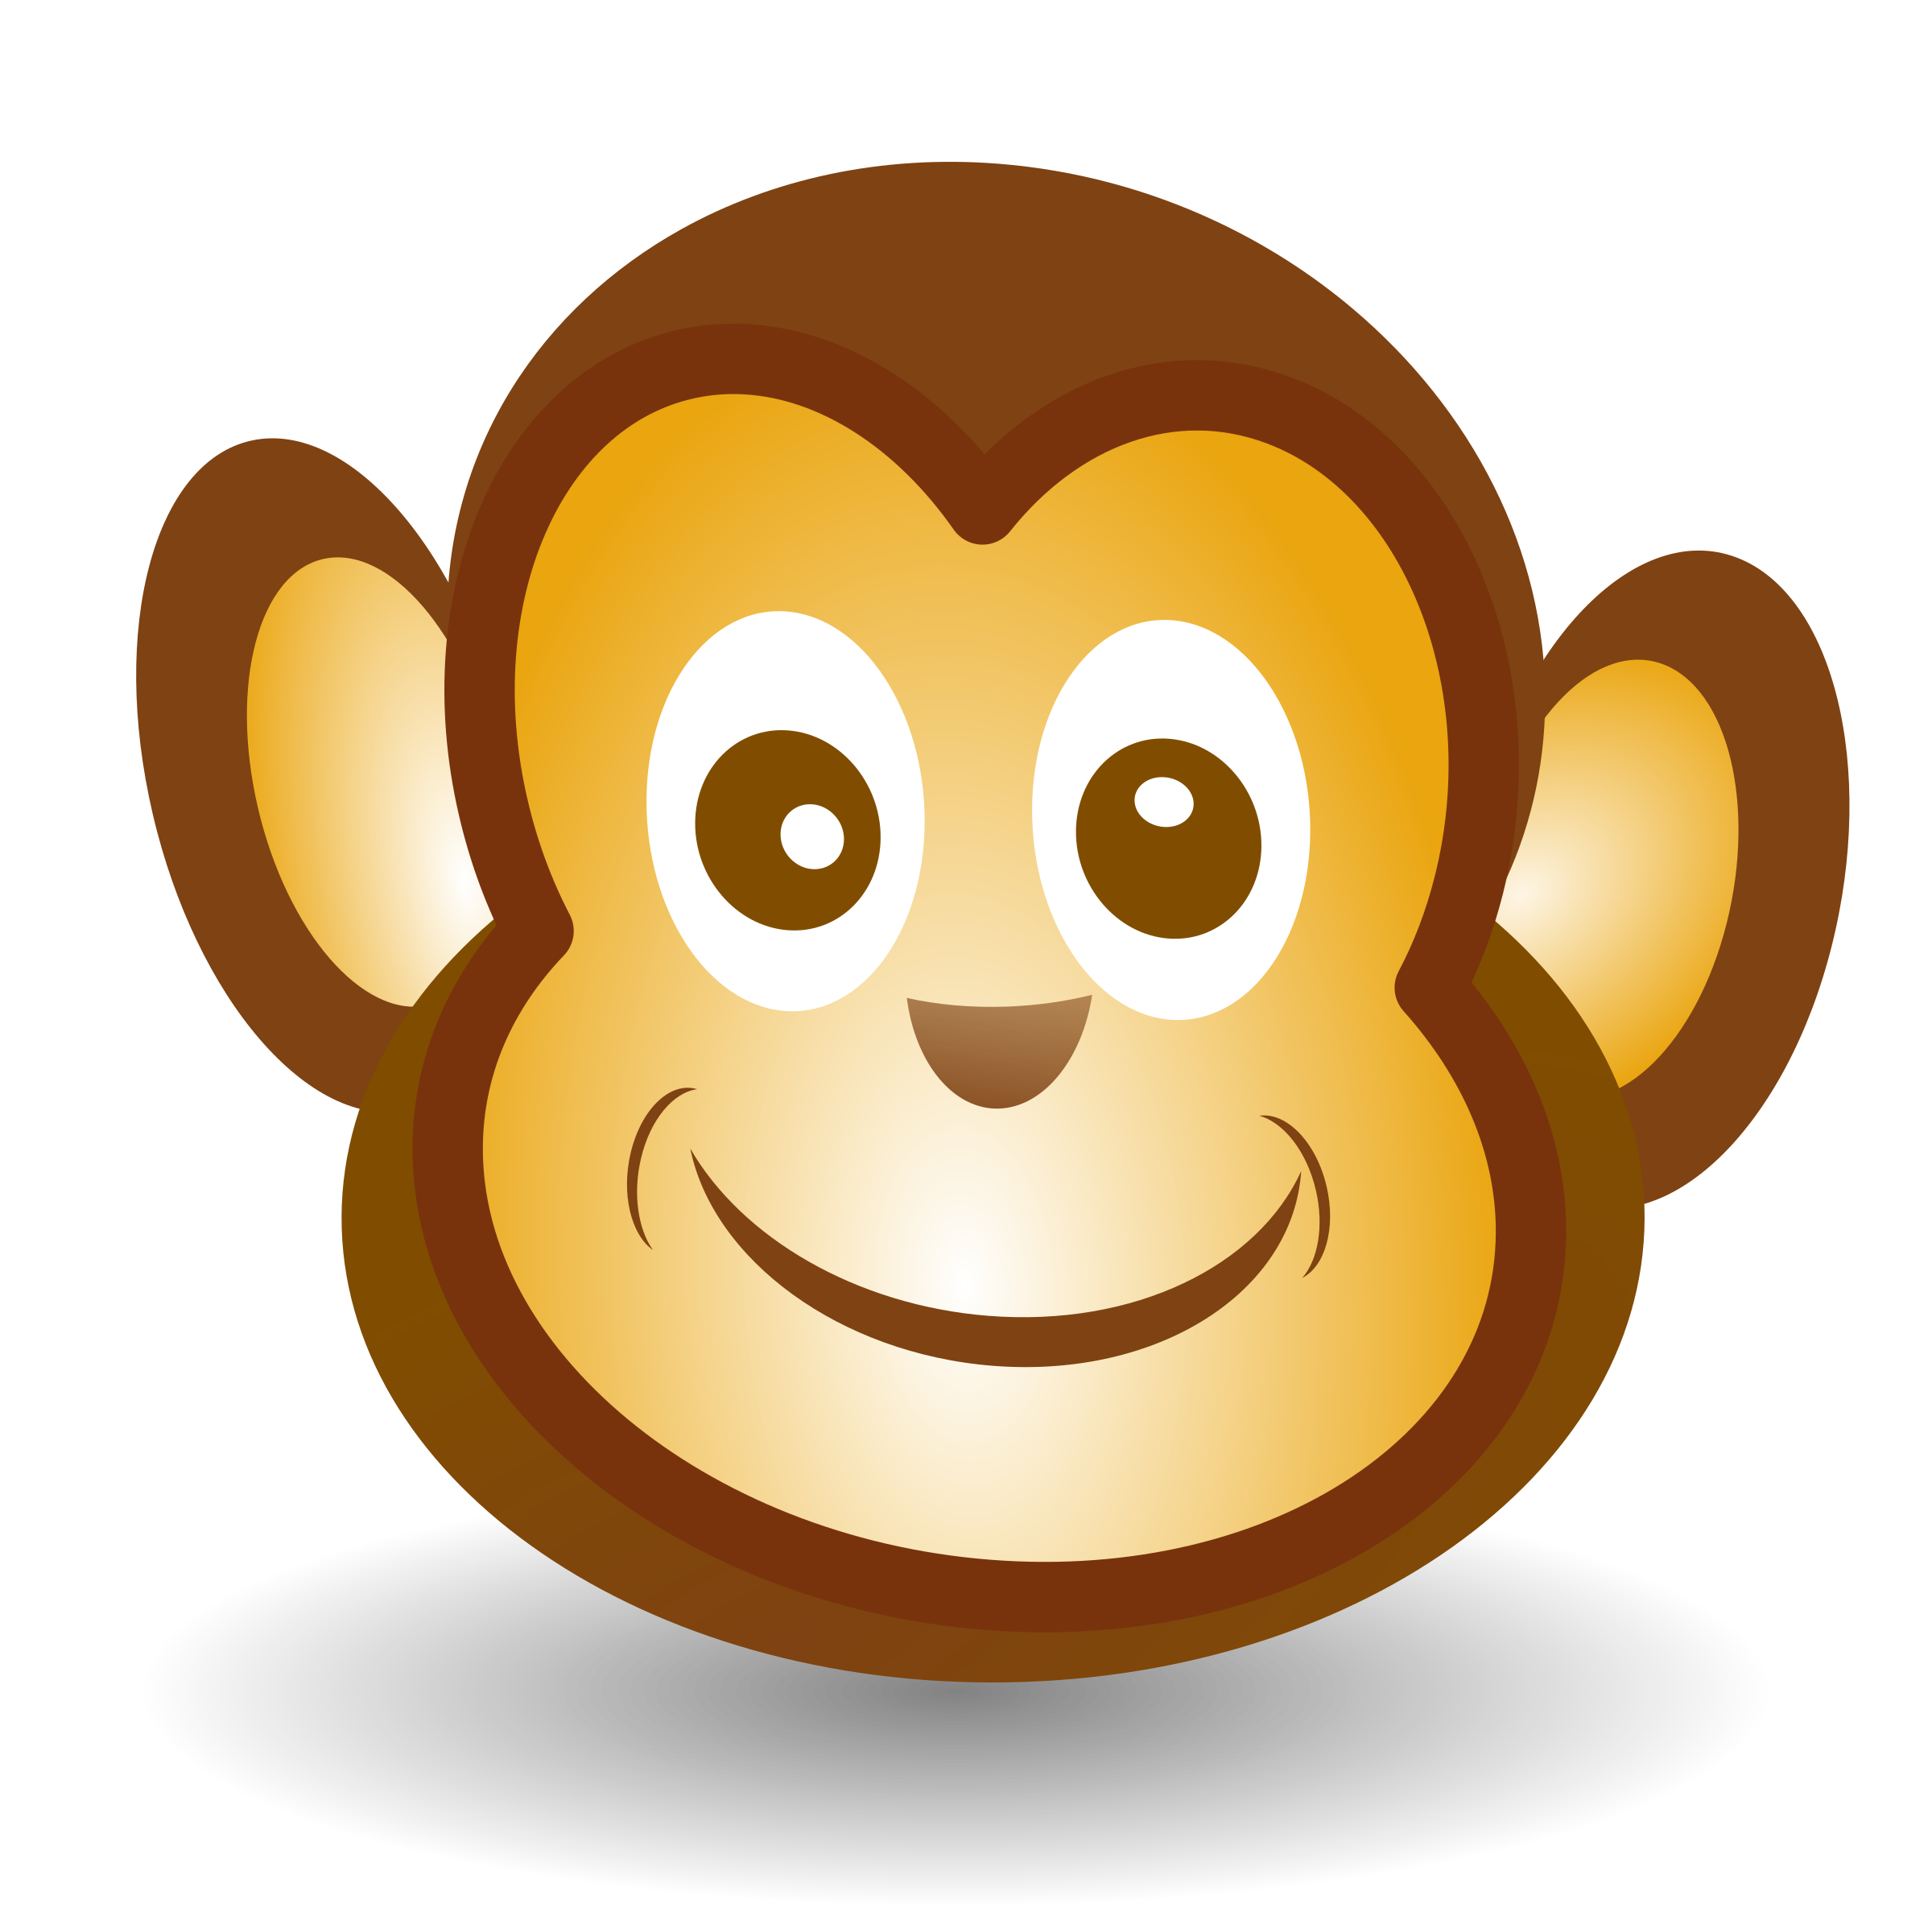 Funny at getdrawings com. Monkey clipart christmas